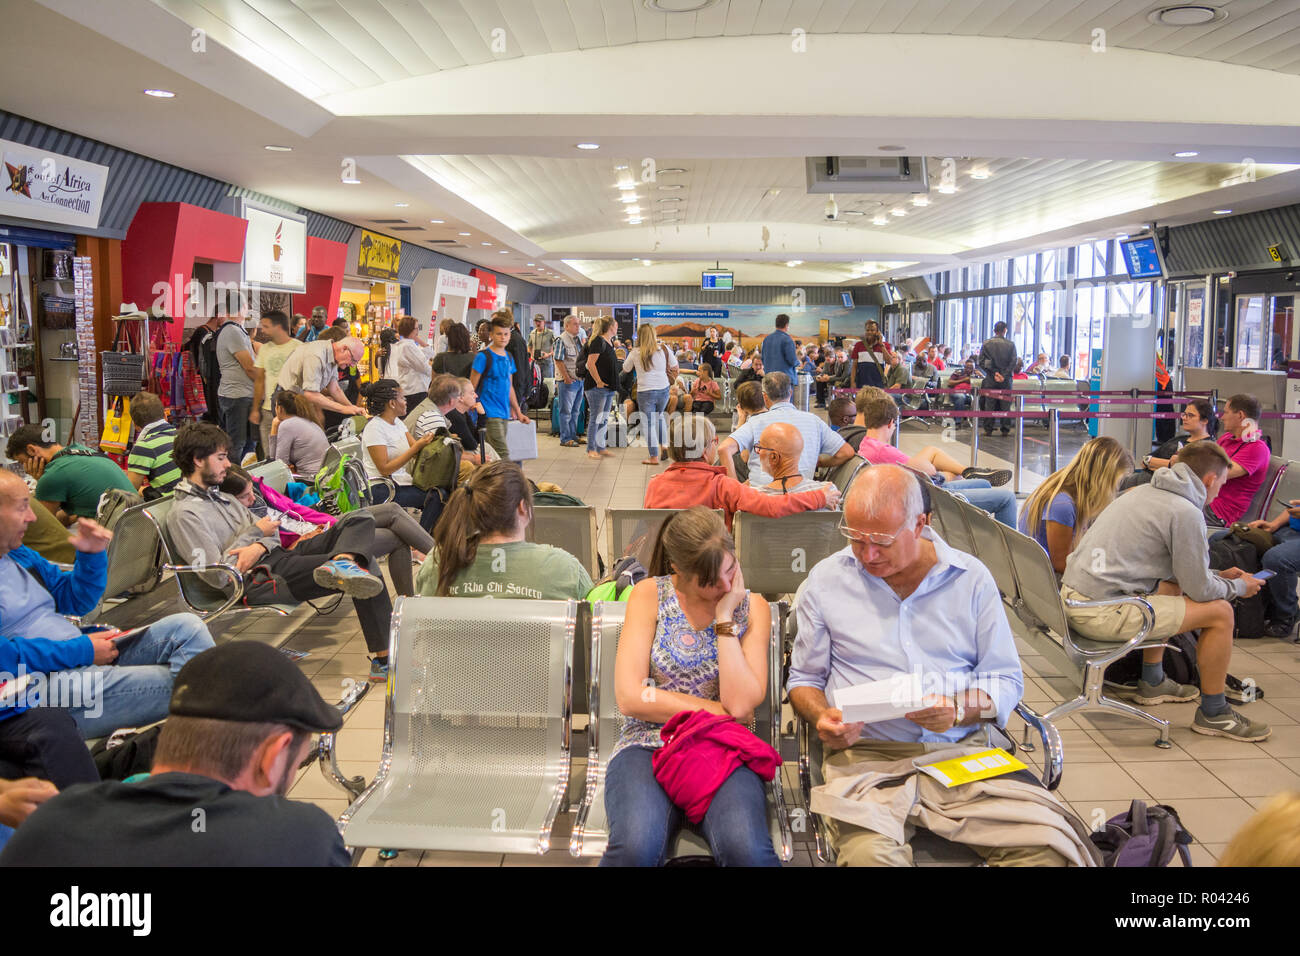 airline passengers waiting for boarding, windhoek airport, Namibia - Stock Image